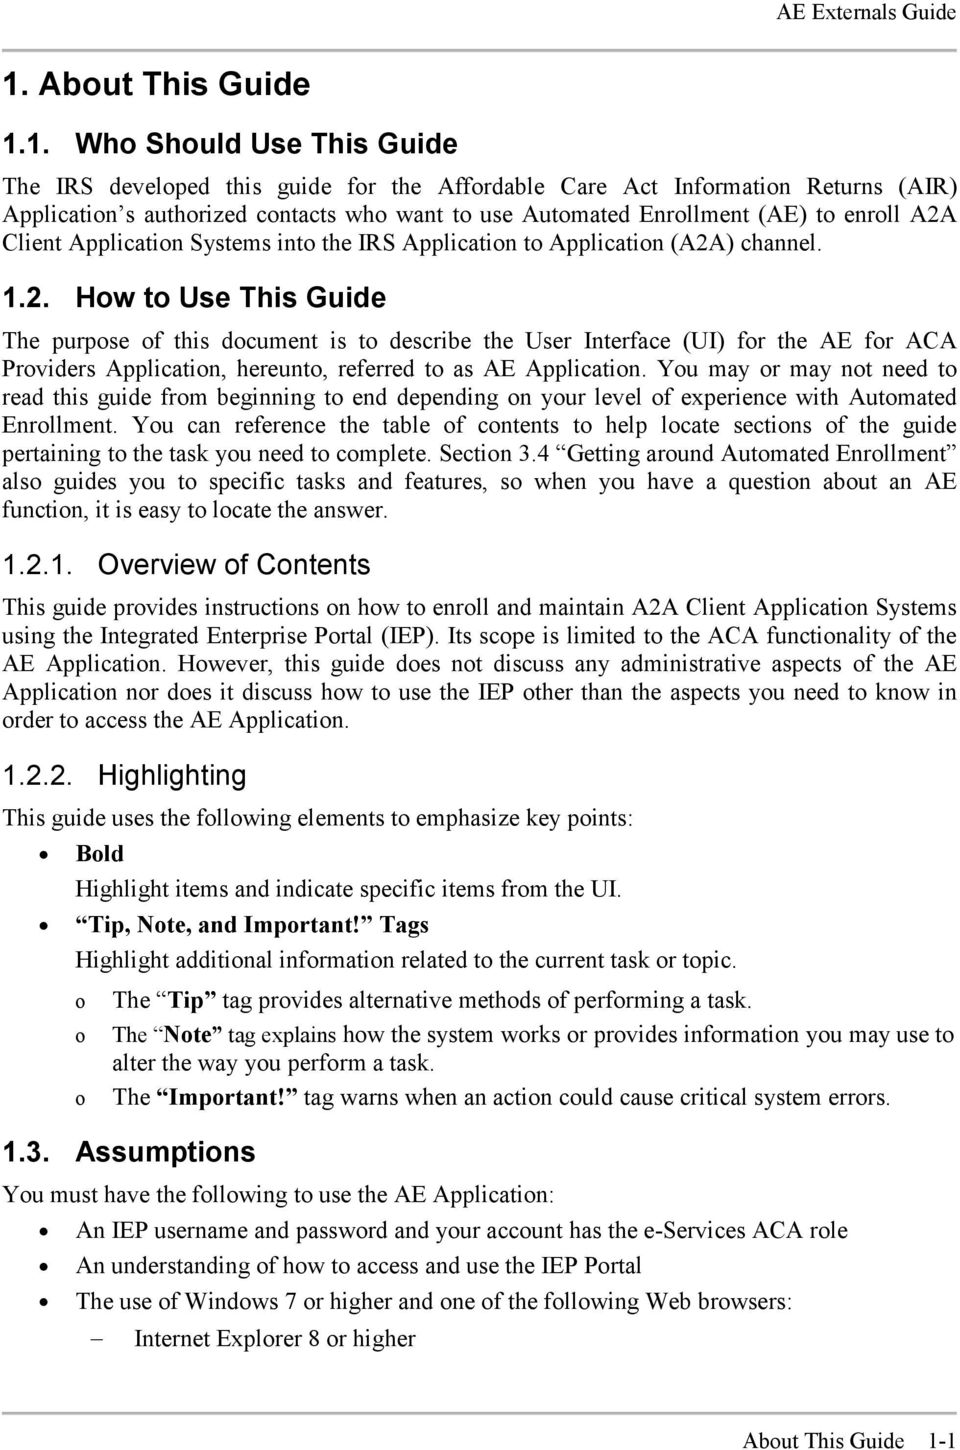 Client Application Systems into the IRS Application to Application (A2A